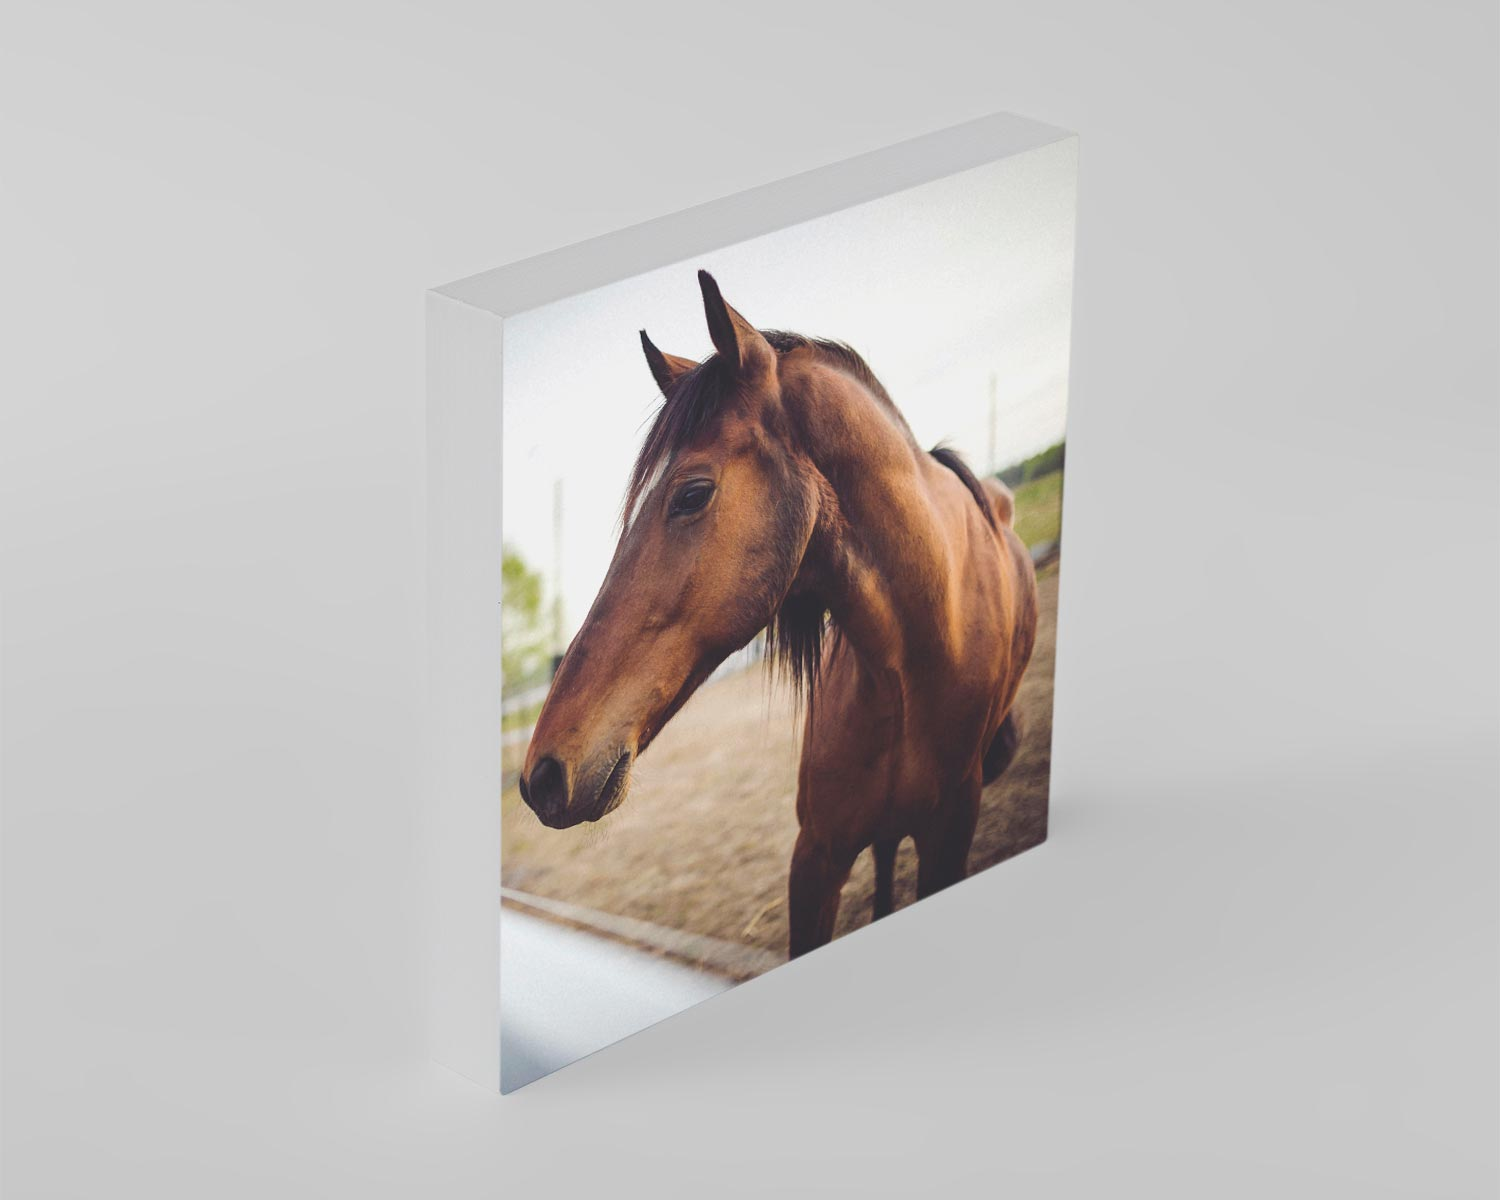 Square white edge photo block